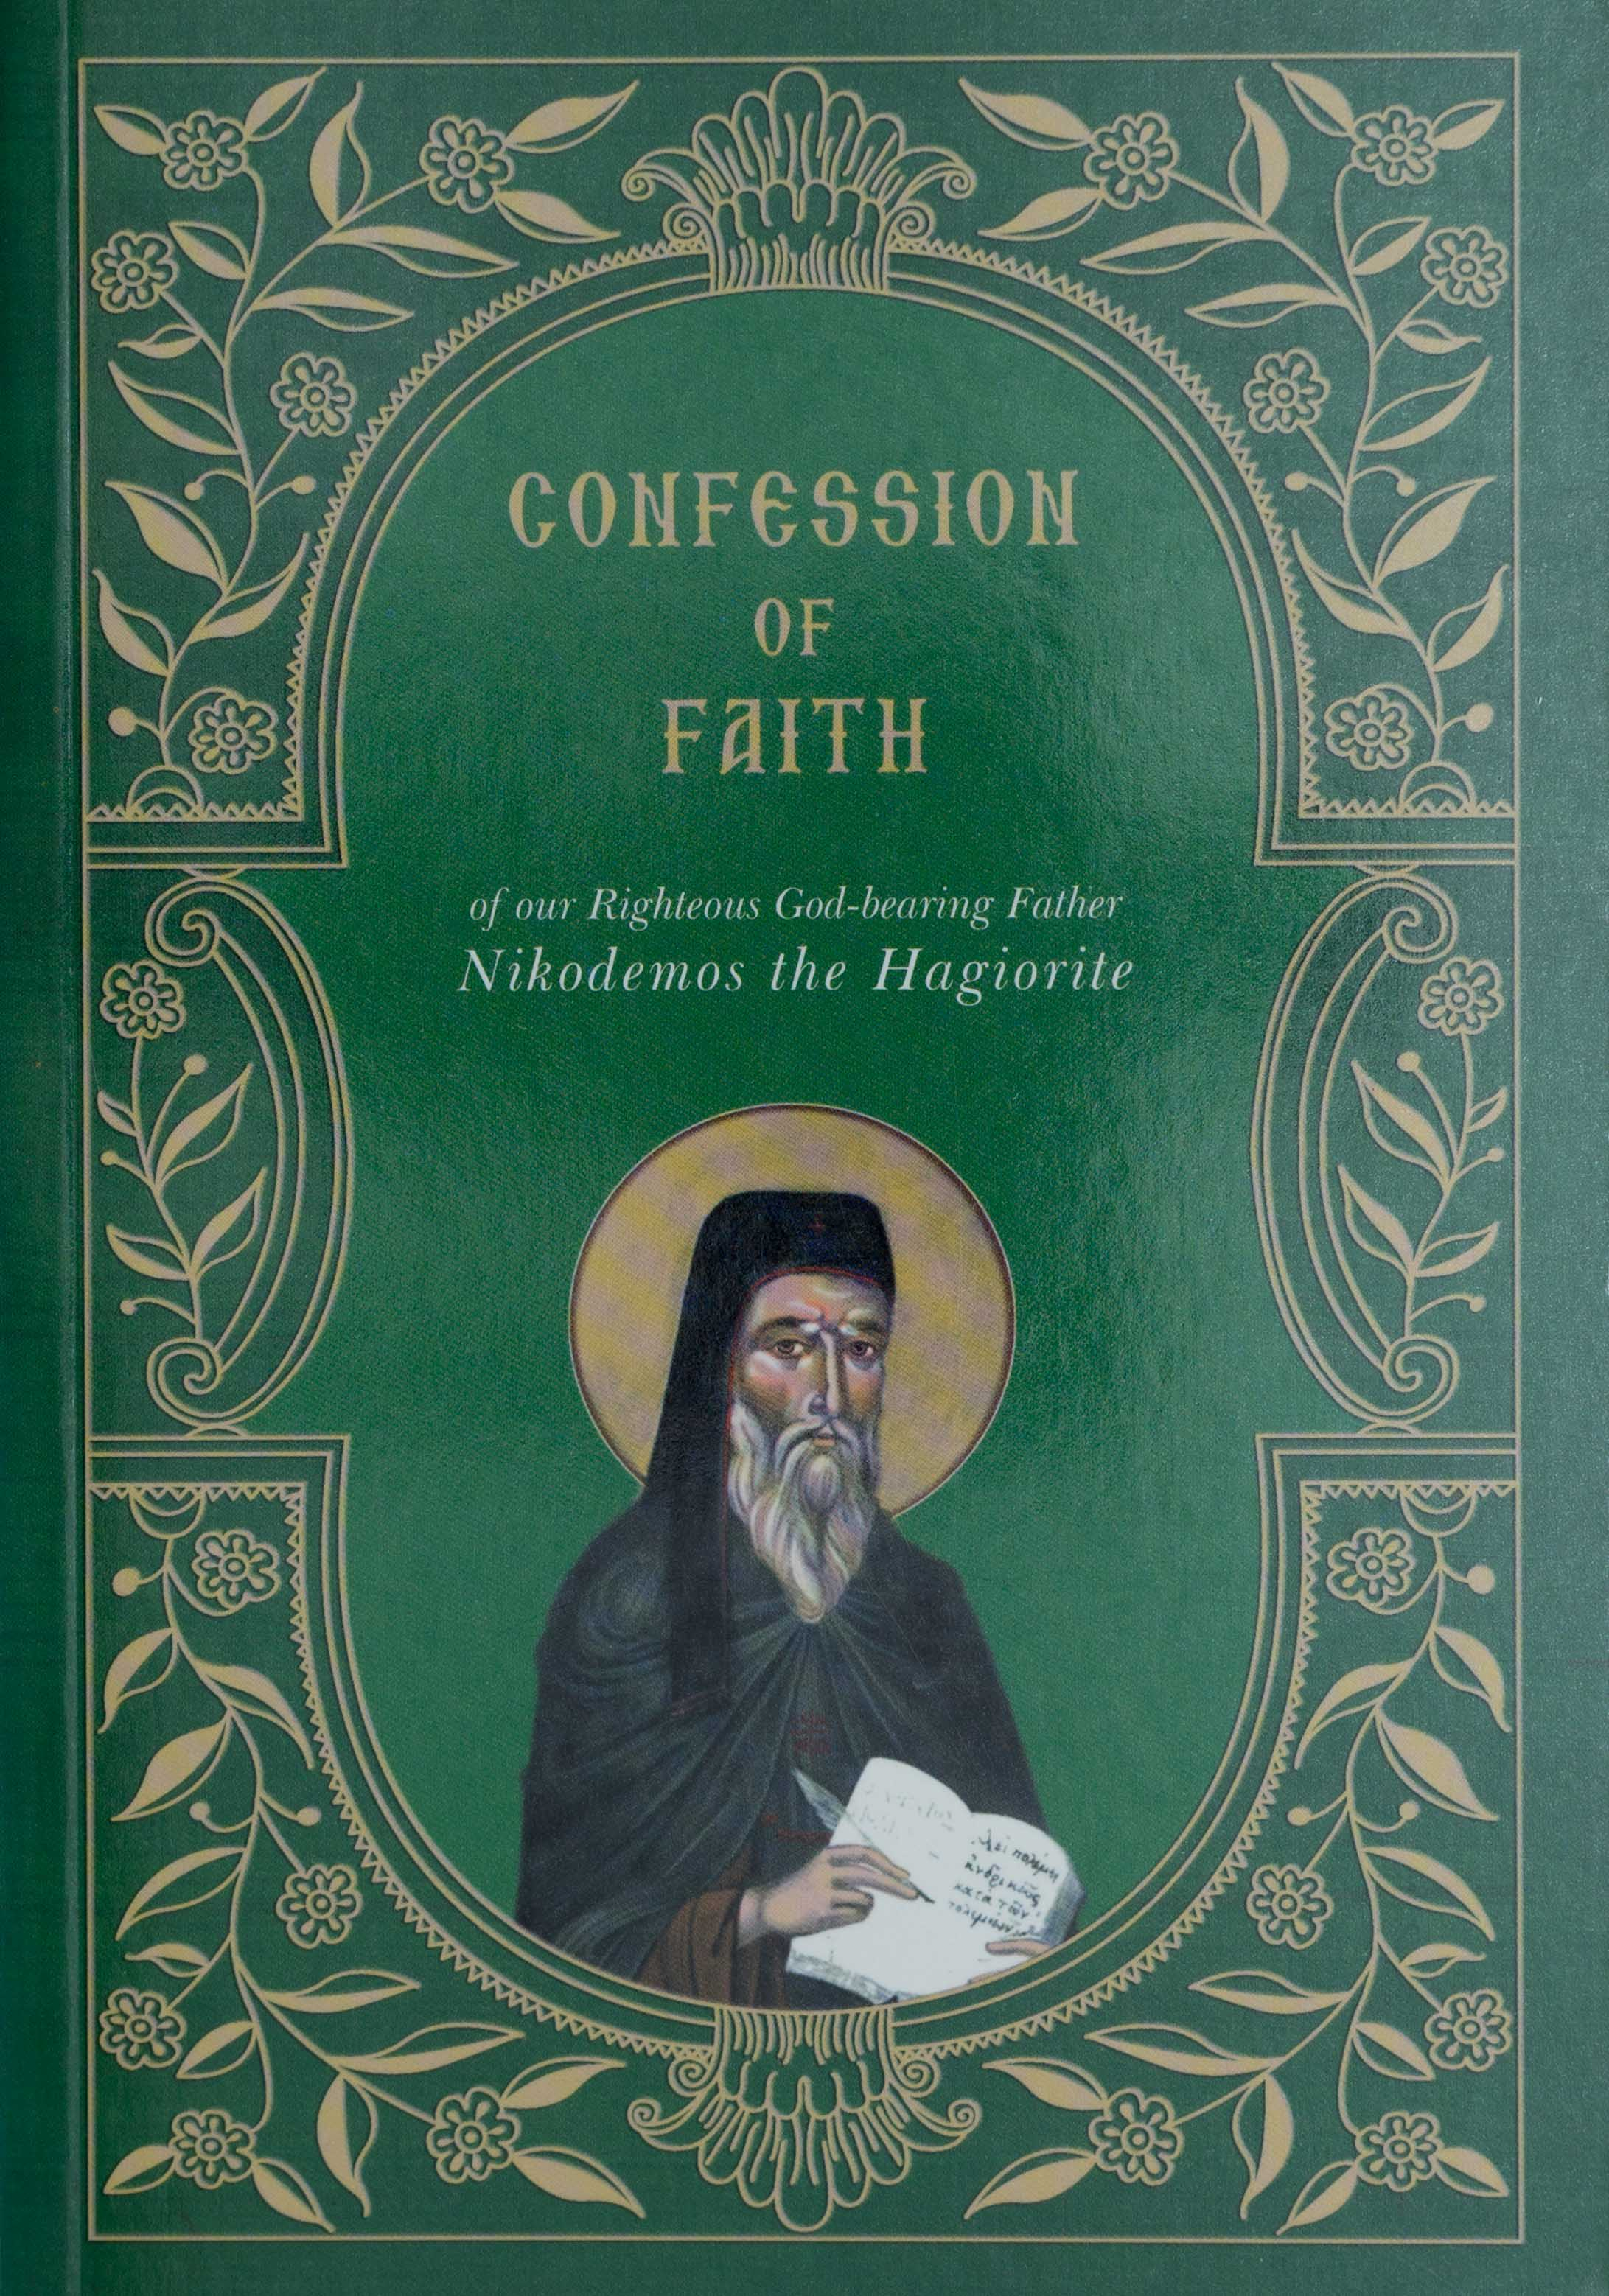 Confession of Faith                OUT OF PRINT